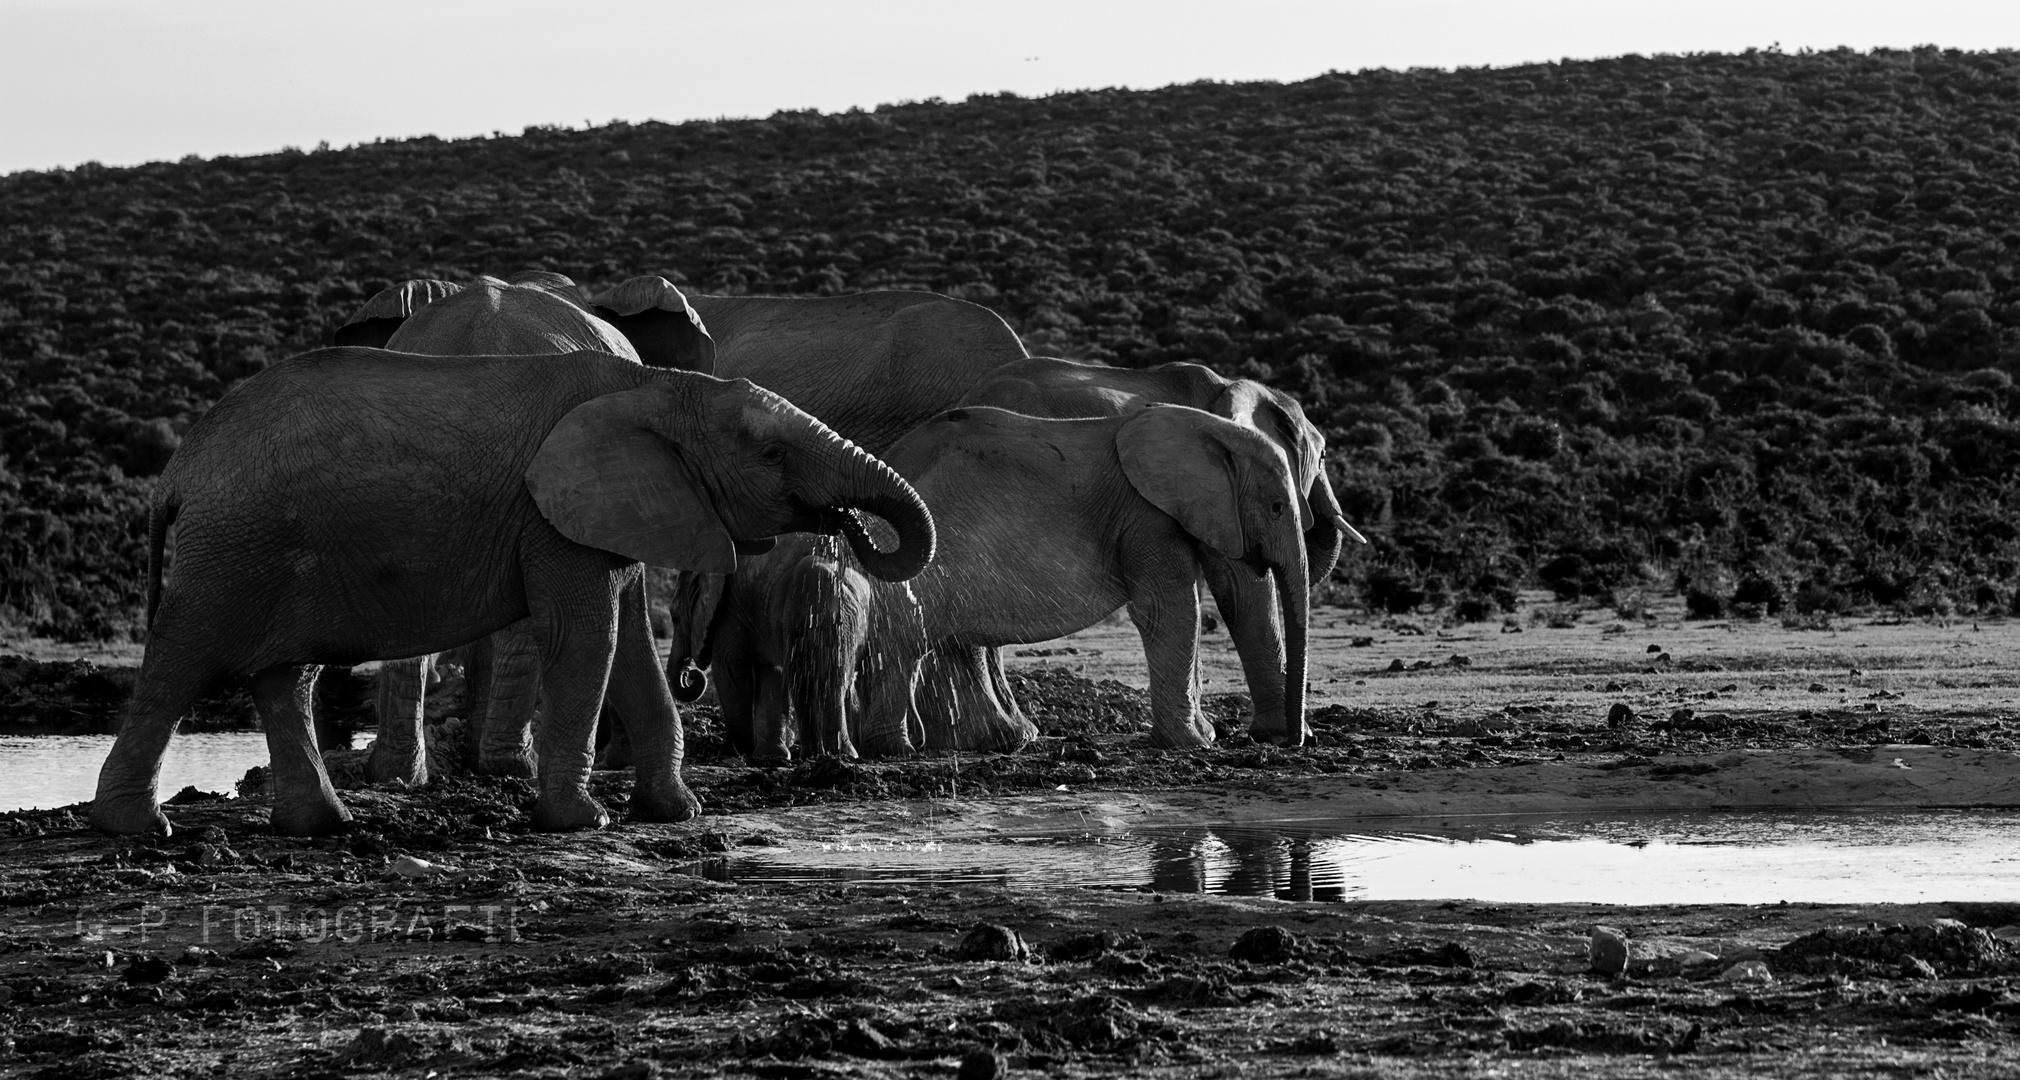 Elefanten am Wasserloch | Addo NP | South Africa